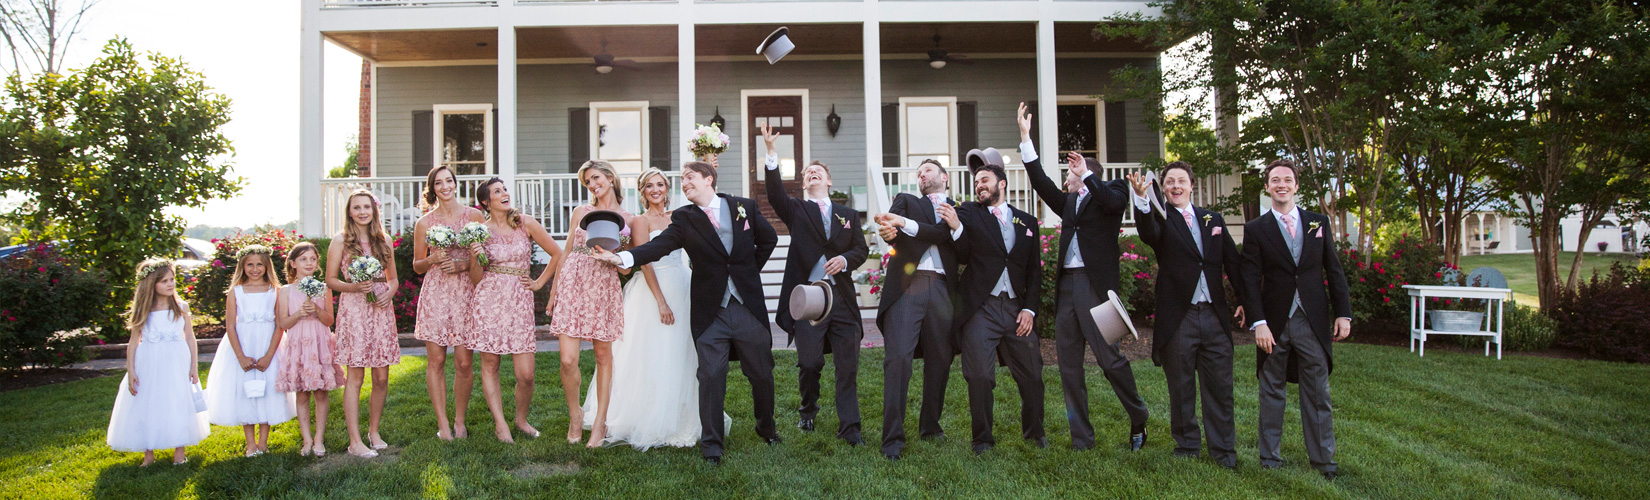 Nashville Wedding Photographers | Sara Kauss Photography